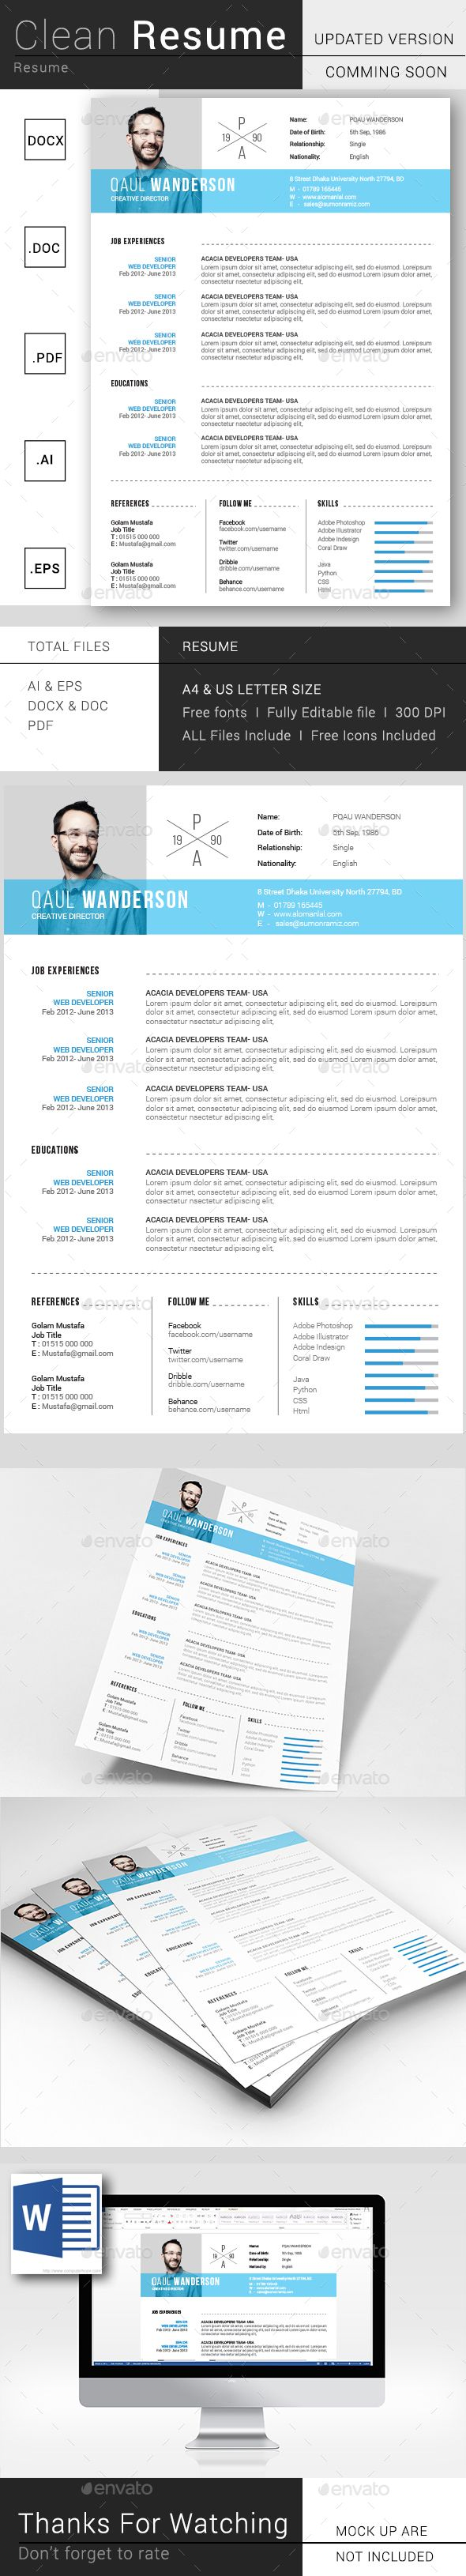 Simple Resume / CV Template Vector EPS, AI Illustrator, MS Word ...